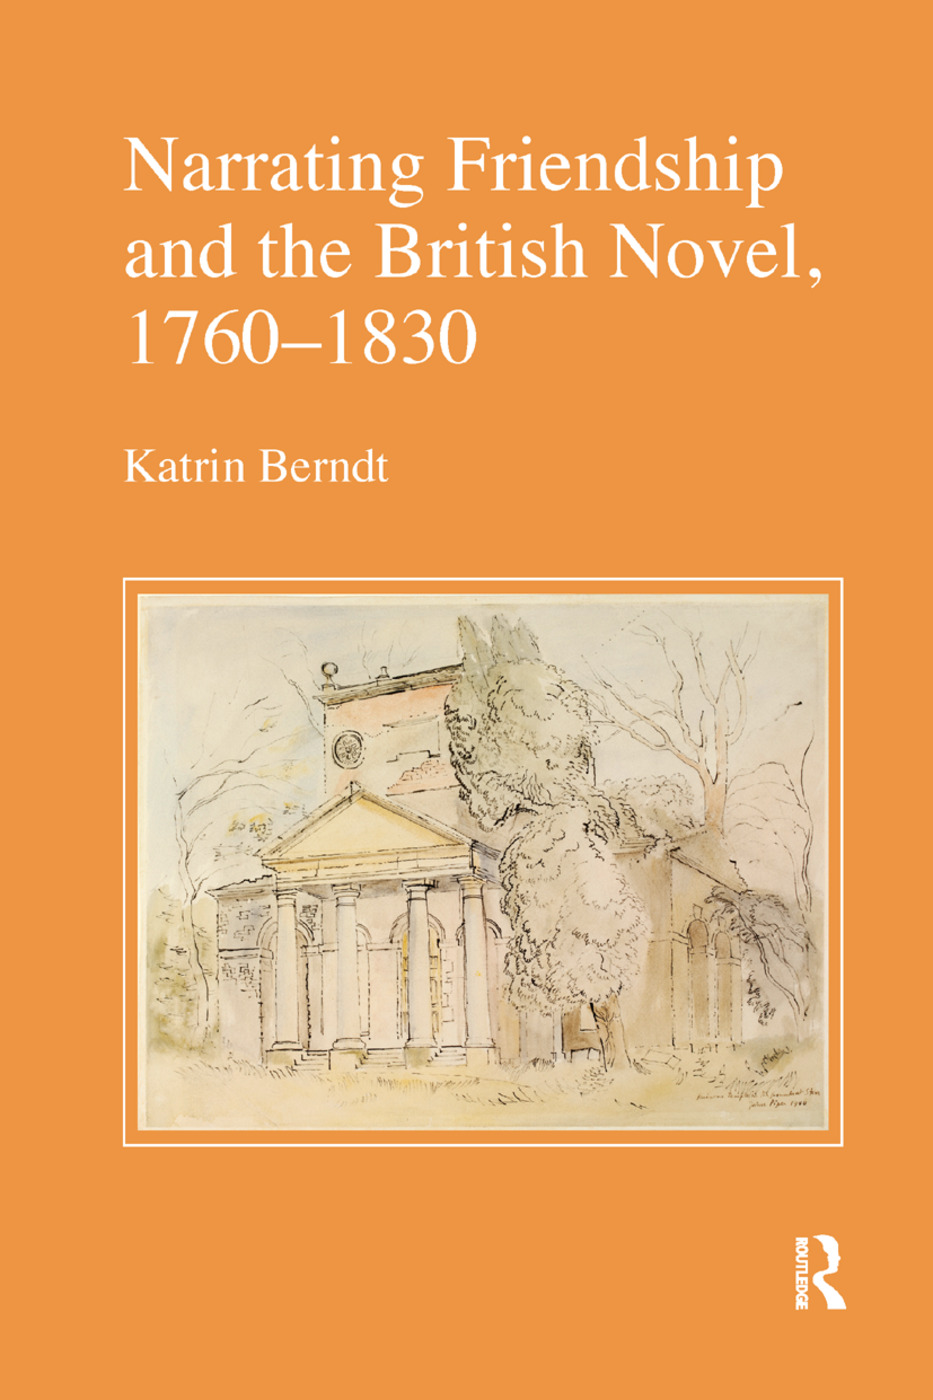 Narrating Friendship and the British Novel, 1760-1830